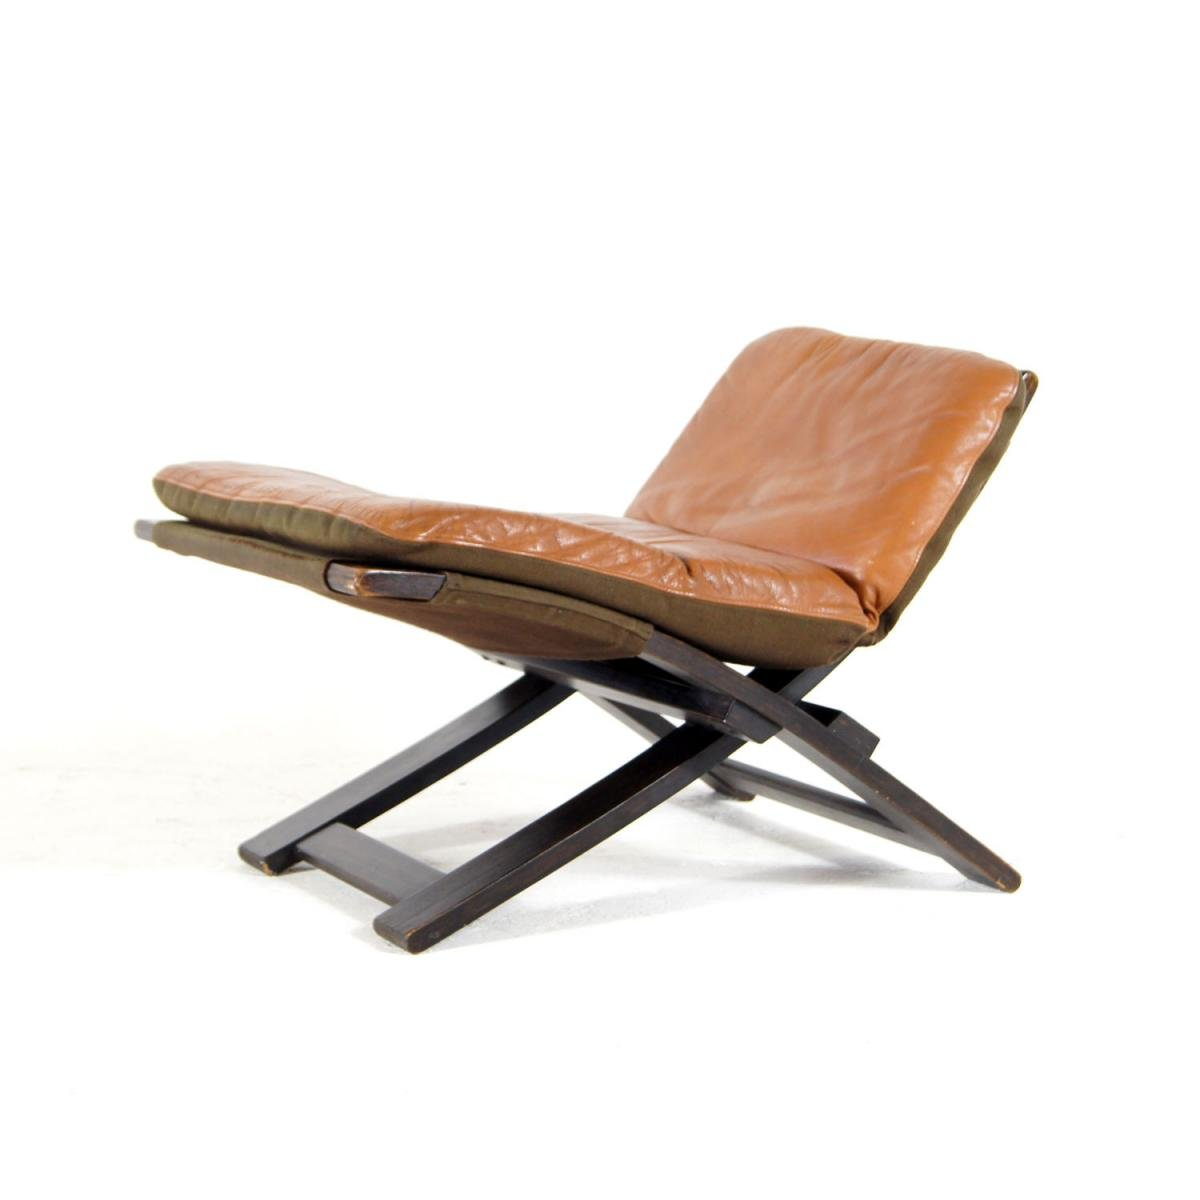 Swedish Leather And Rosewood Footstool By Ake Fibytter For Nelo Mobel, 1970s